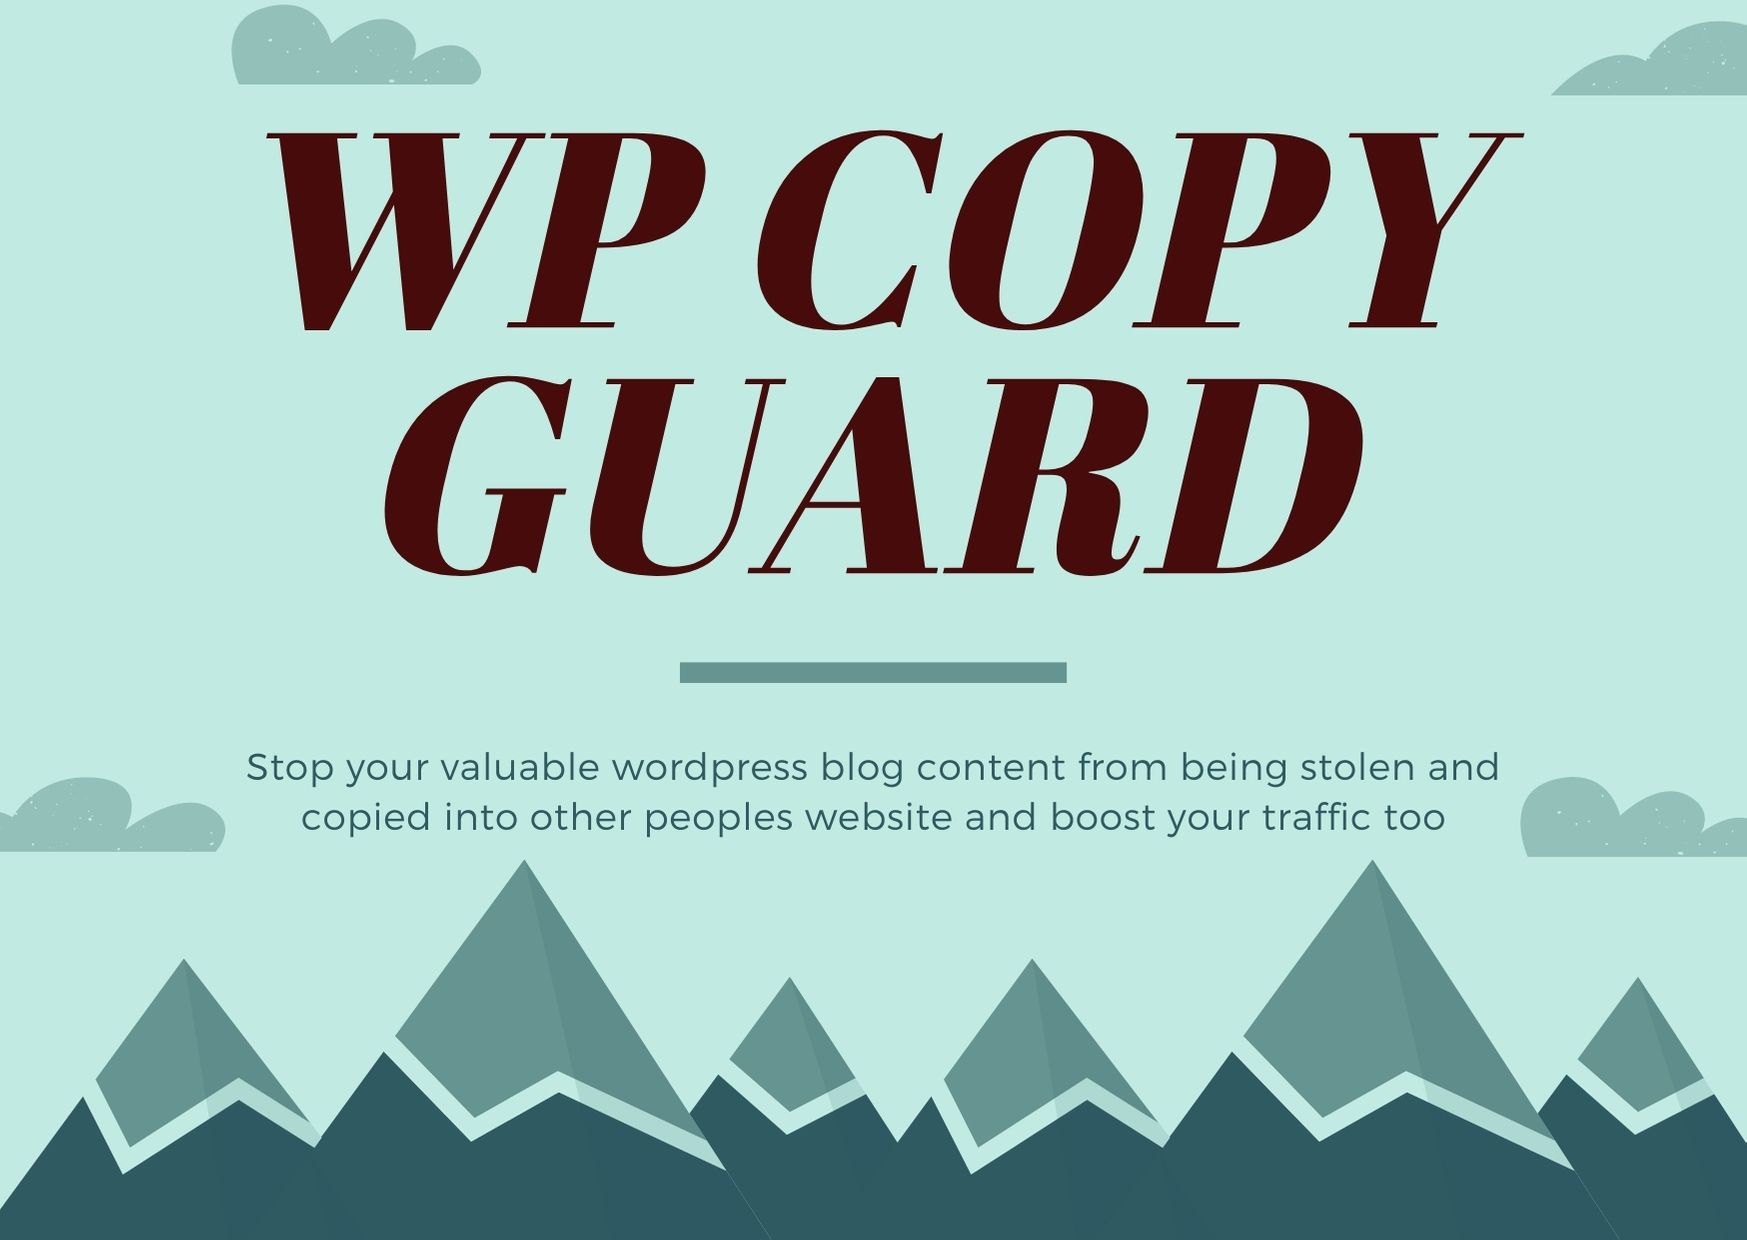 WP COPY GUARD your exclusive blog content may be stolen copied onto other websites or blogs